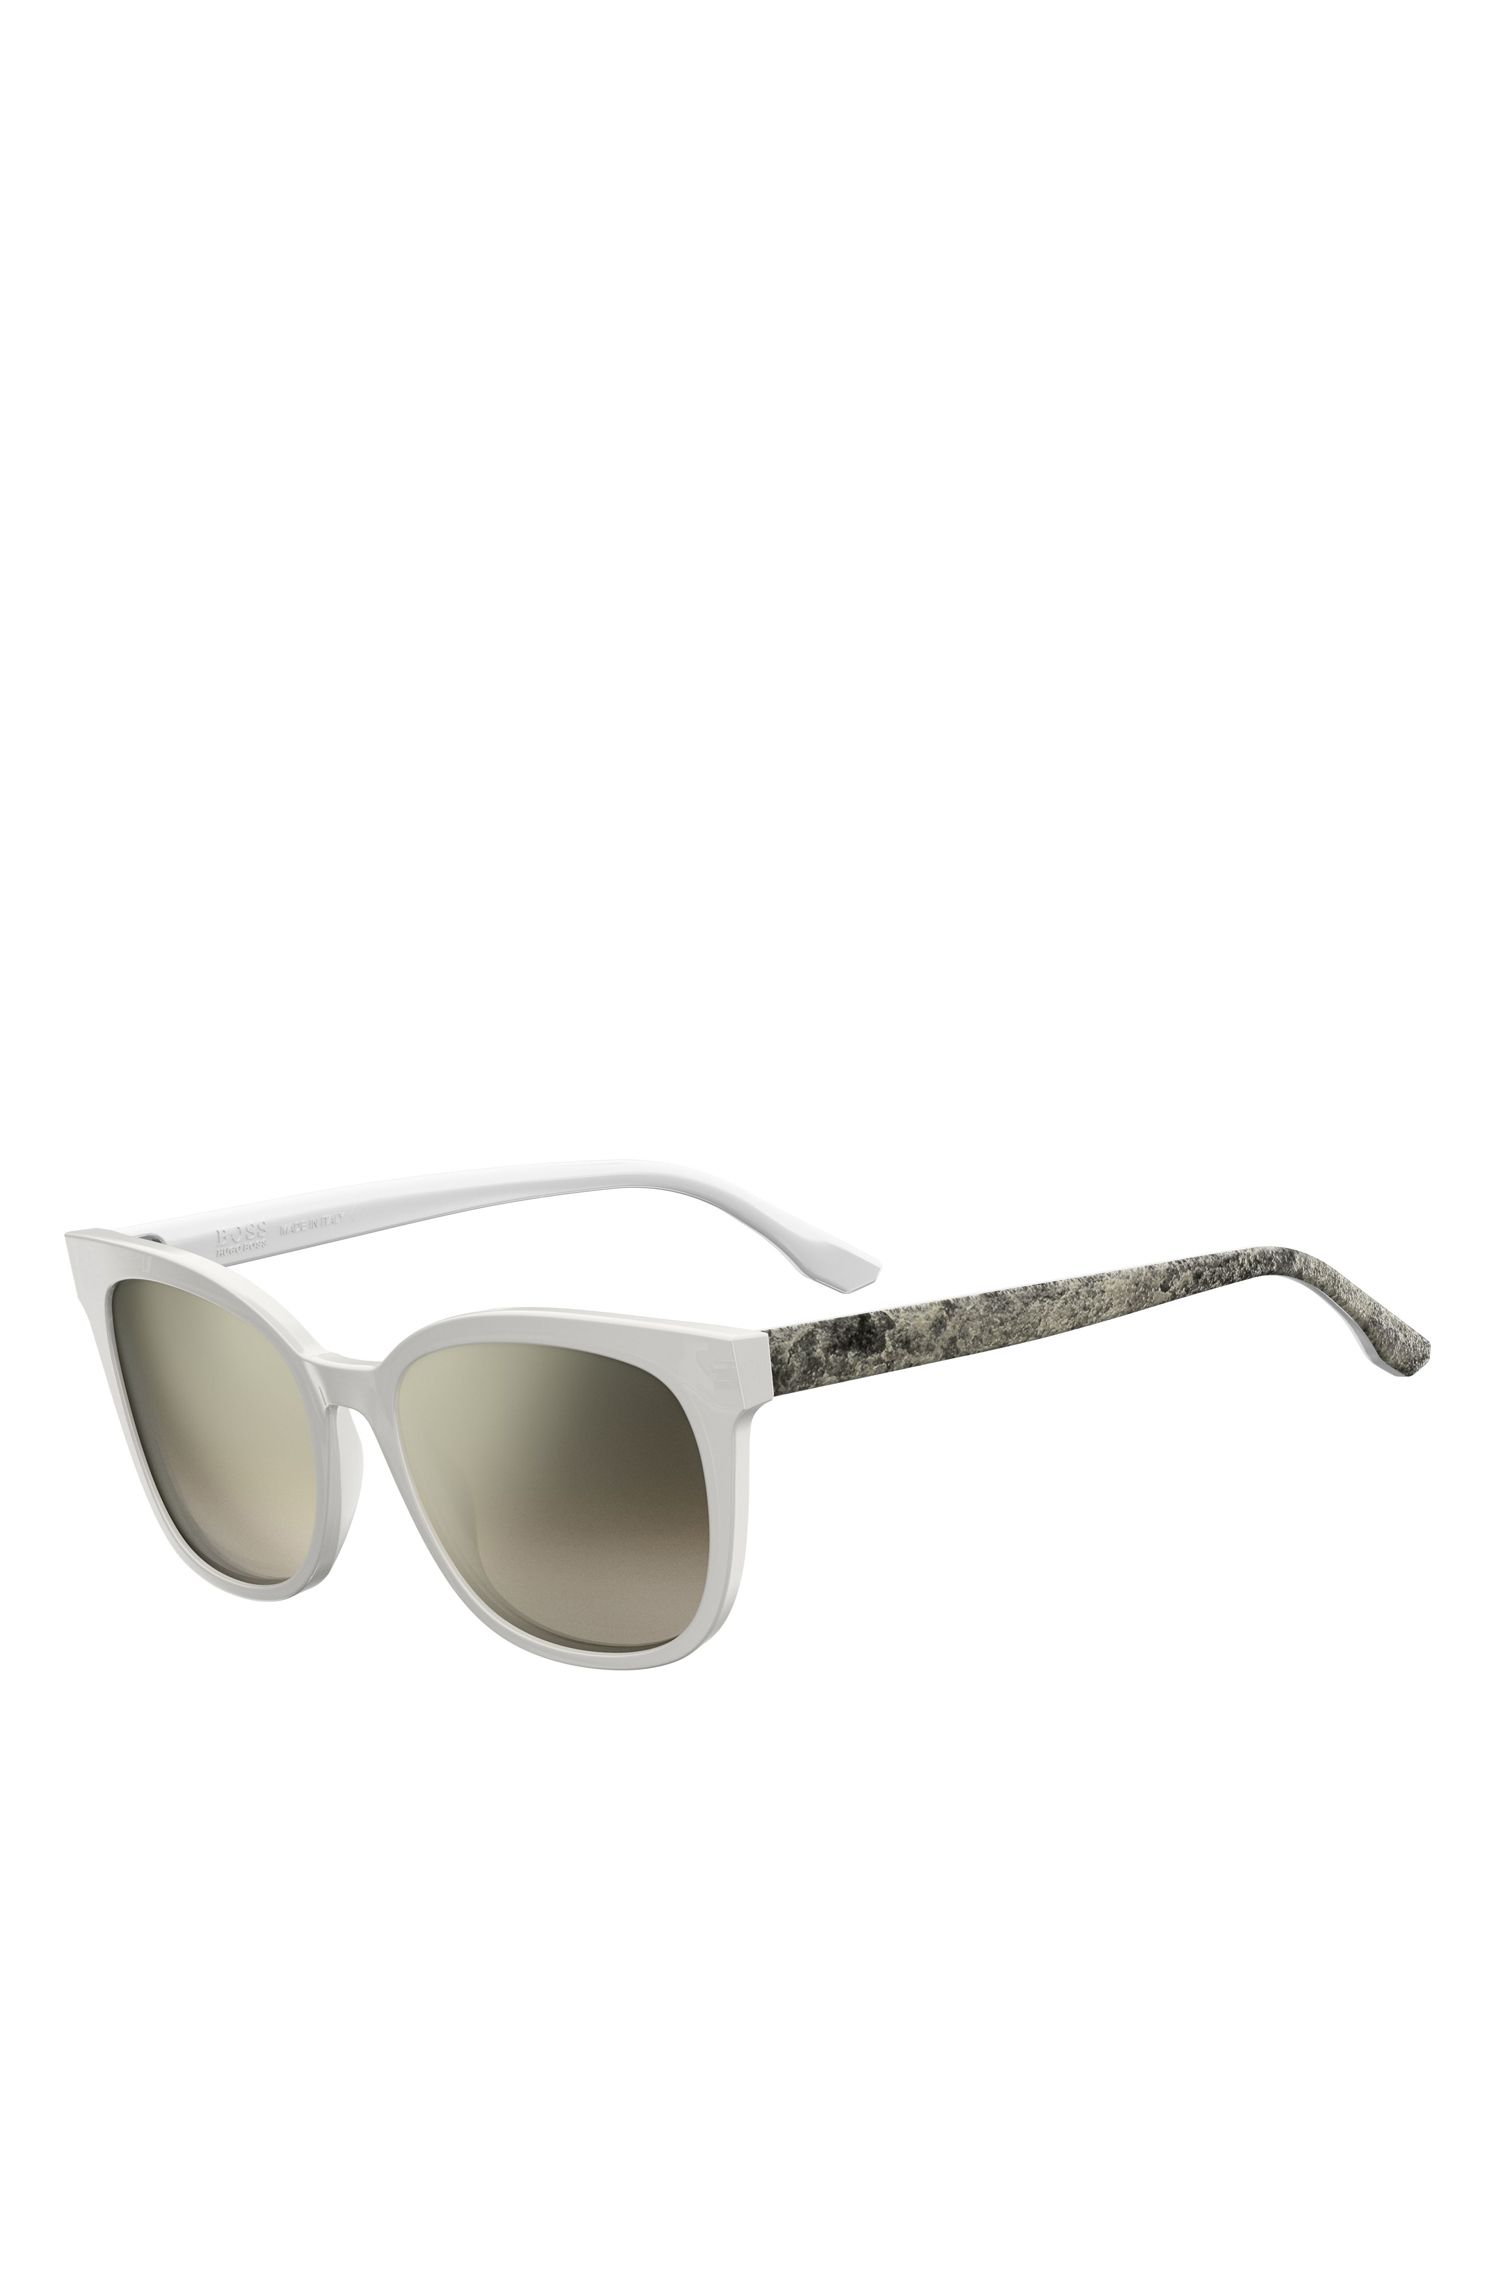 'BOSS 0893' | White Acetate Round Sunglasses